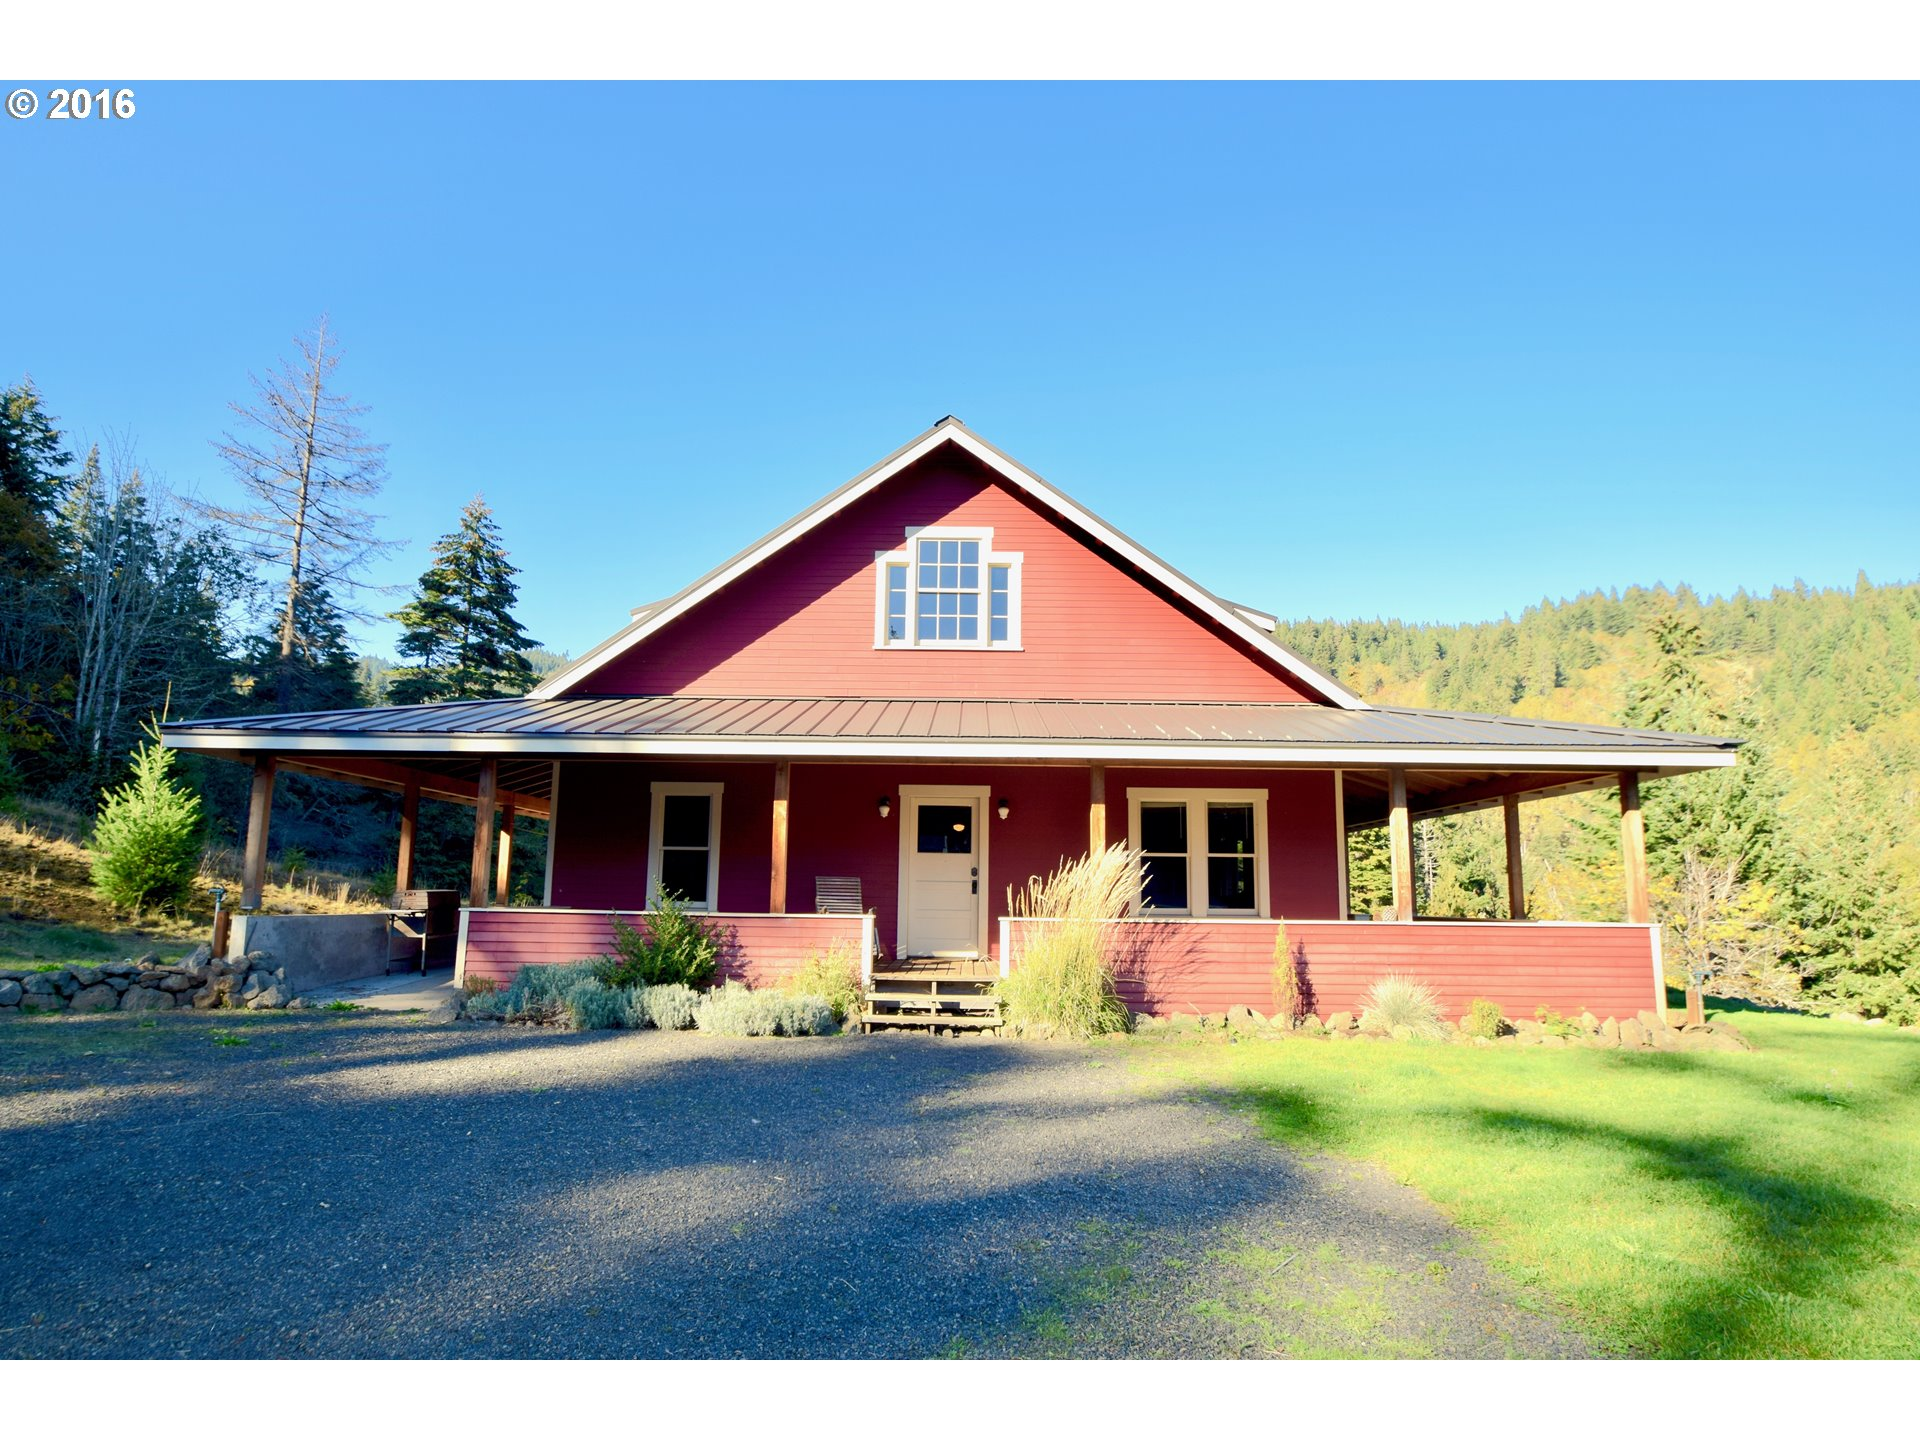 173 LITTLE BUCK CREEK RD, White Salmon, WA 98672